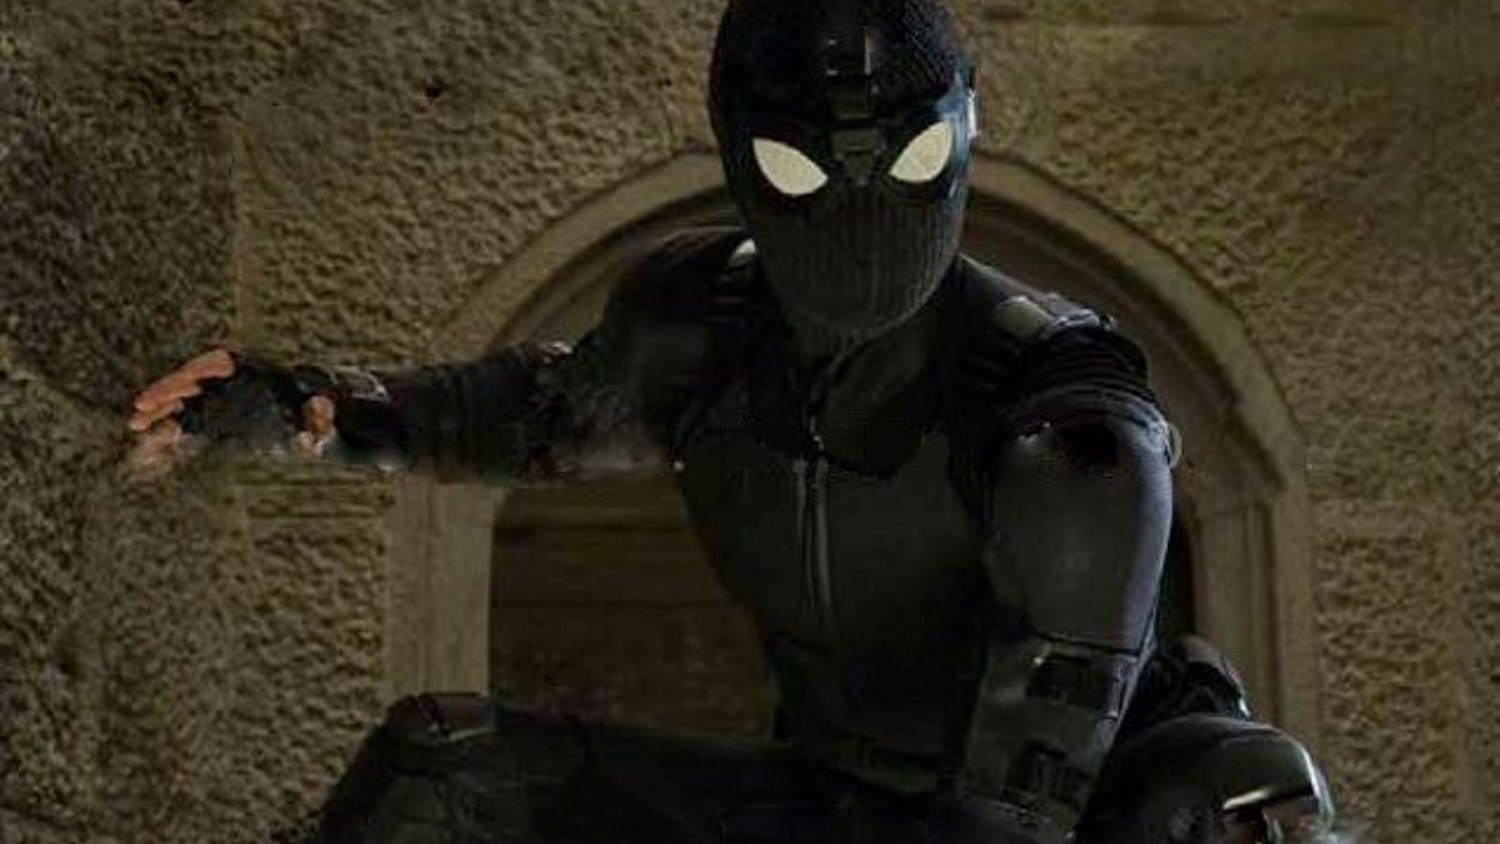 spider-man far from home black suit